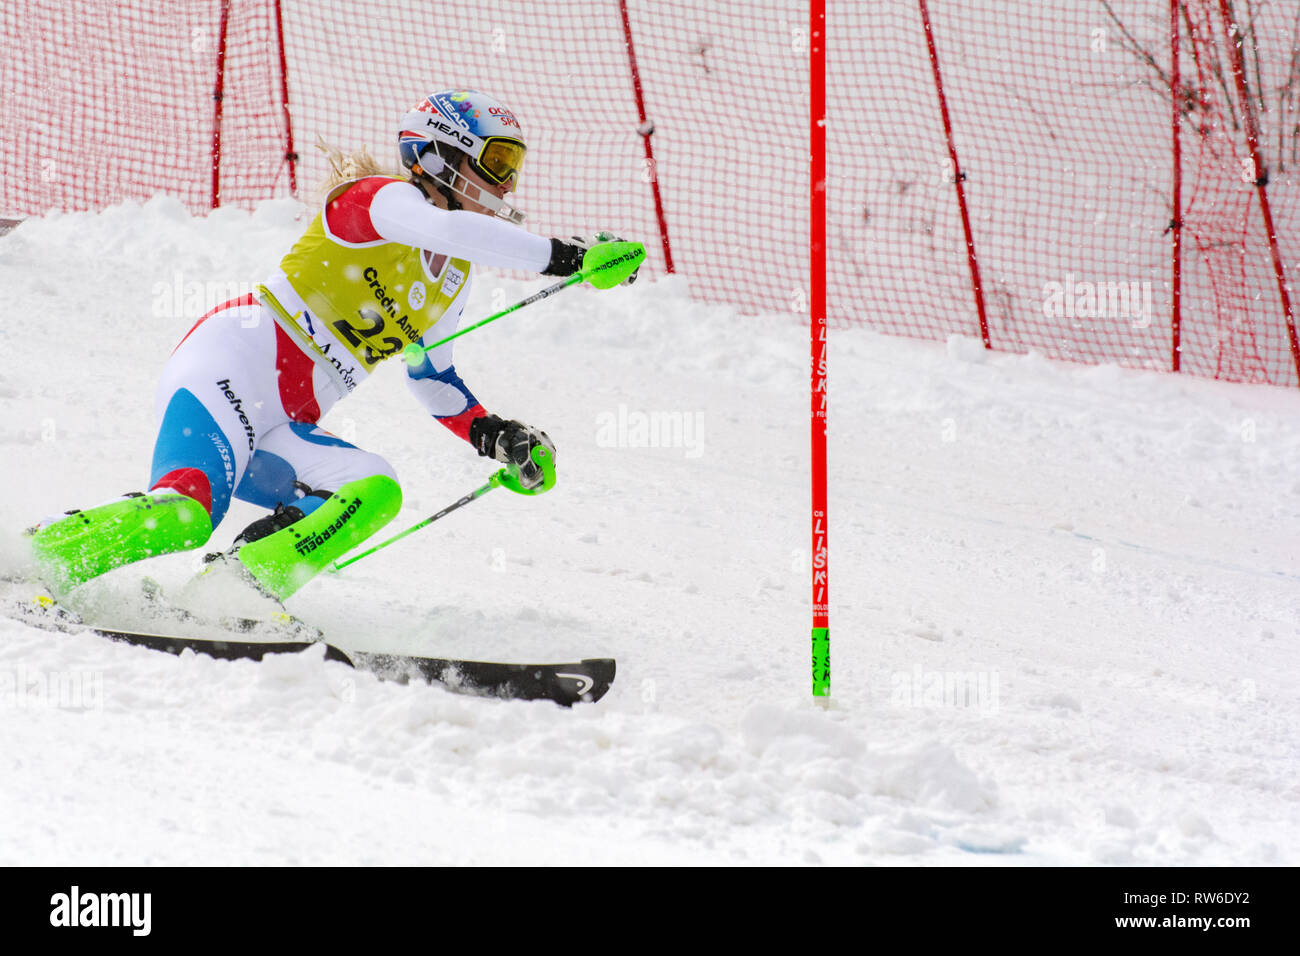 Audi FIS Alpine Ski World Cup - Women's Combined SOLDEU, ANDORRA - FEBRUARY 28: Skier in competes during the Audi FIS Alpine Ski World Cup Women's Sup - Stock Image